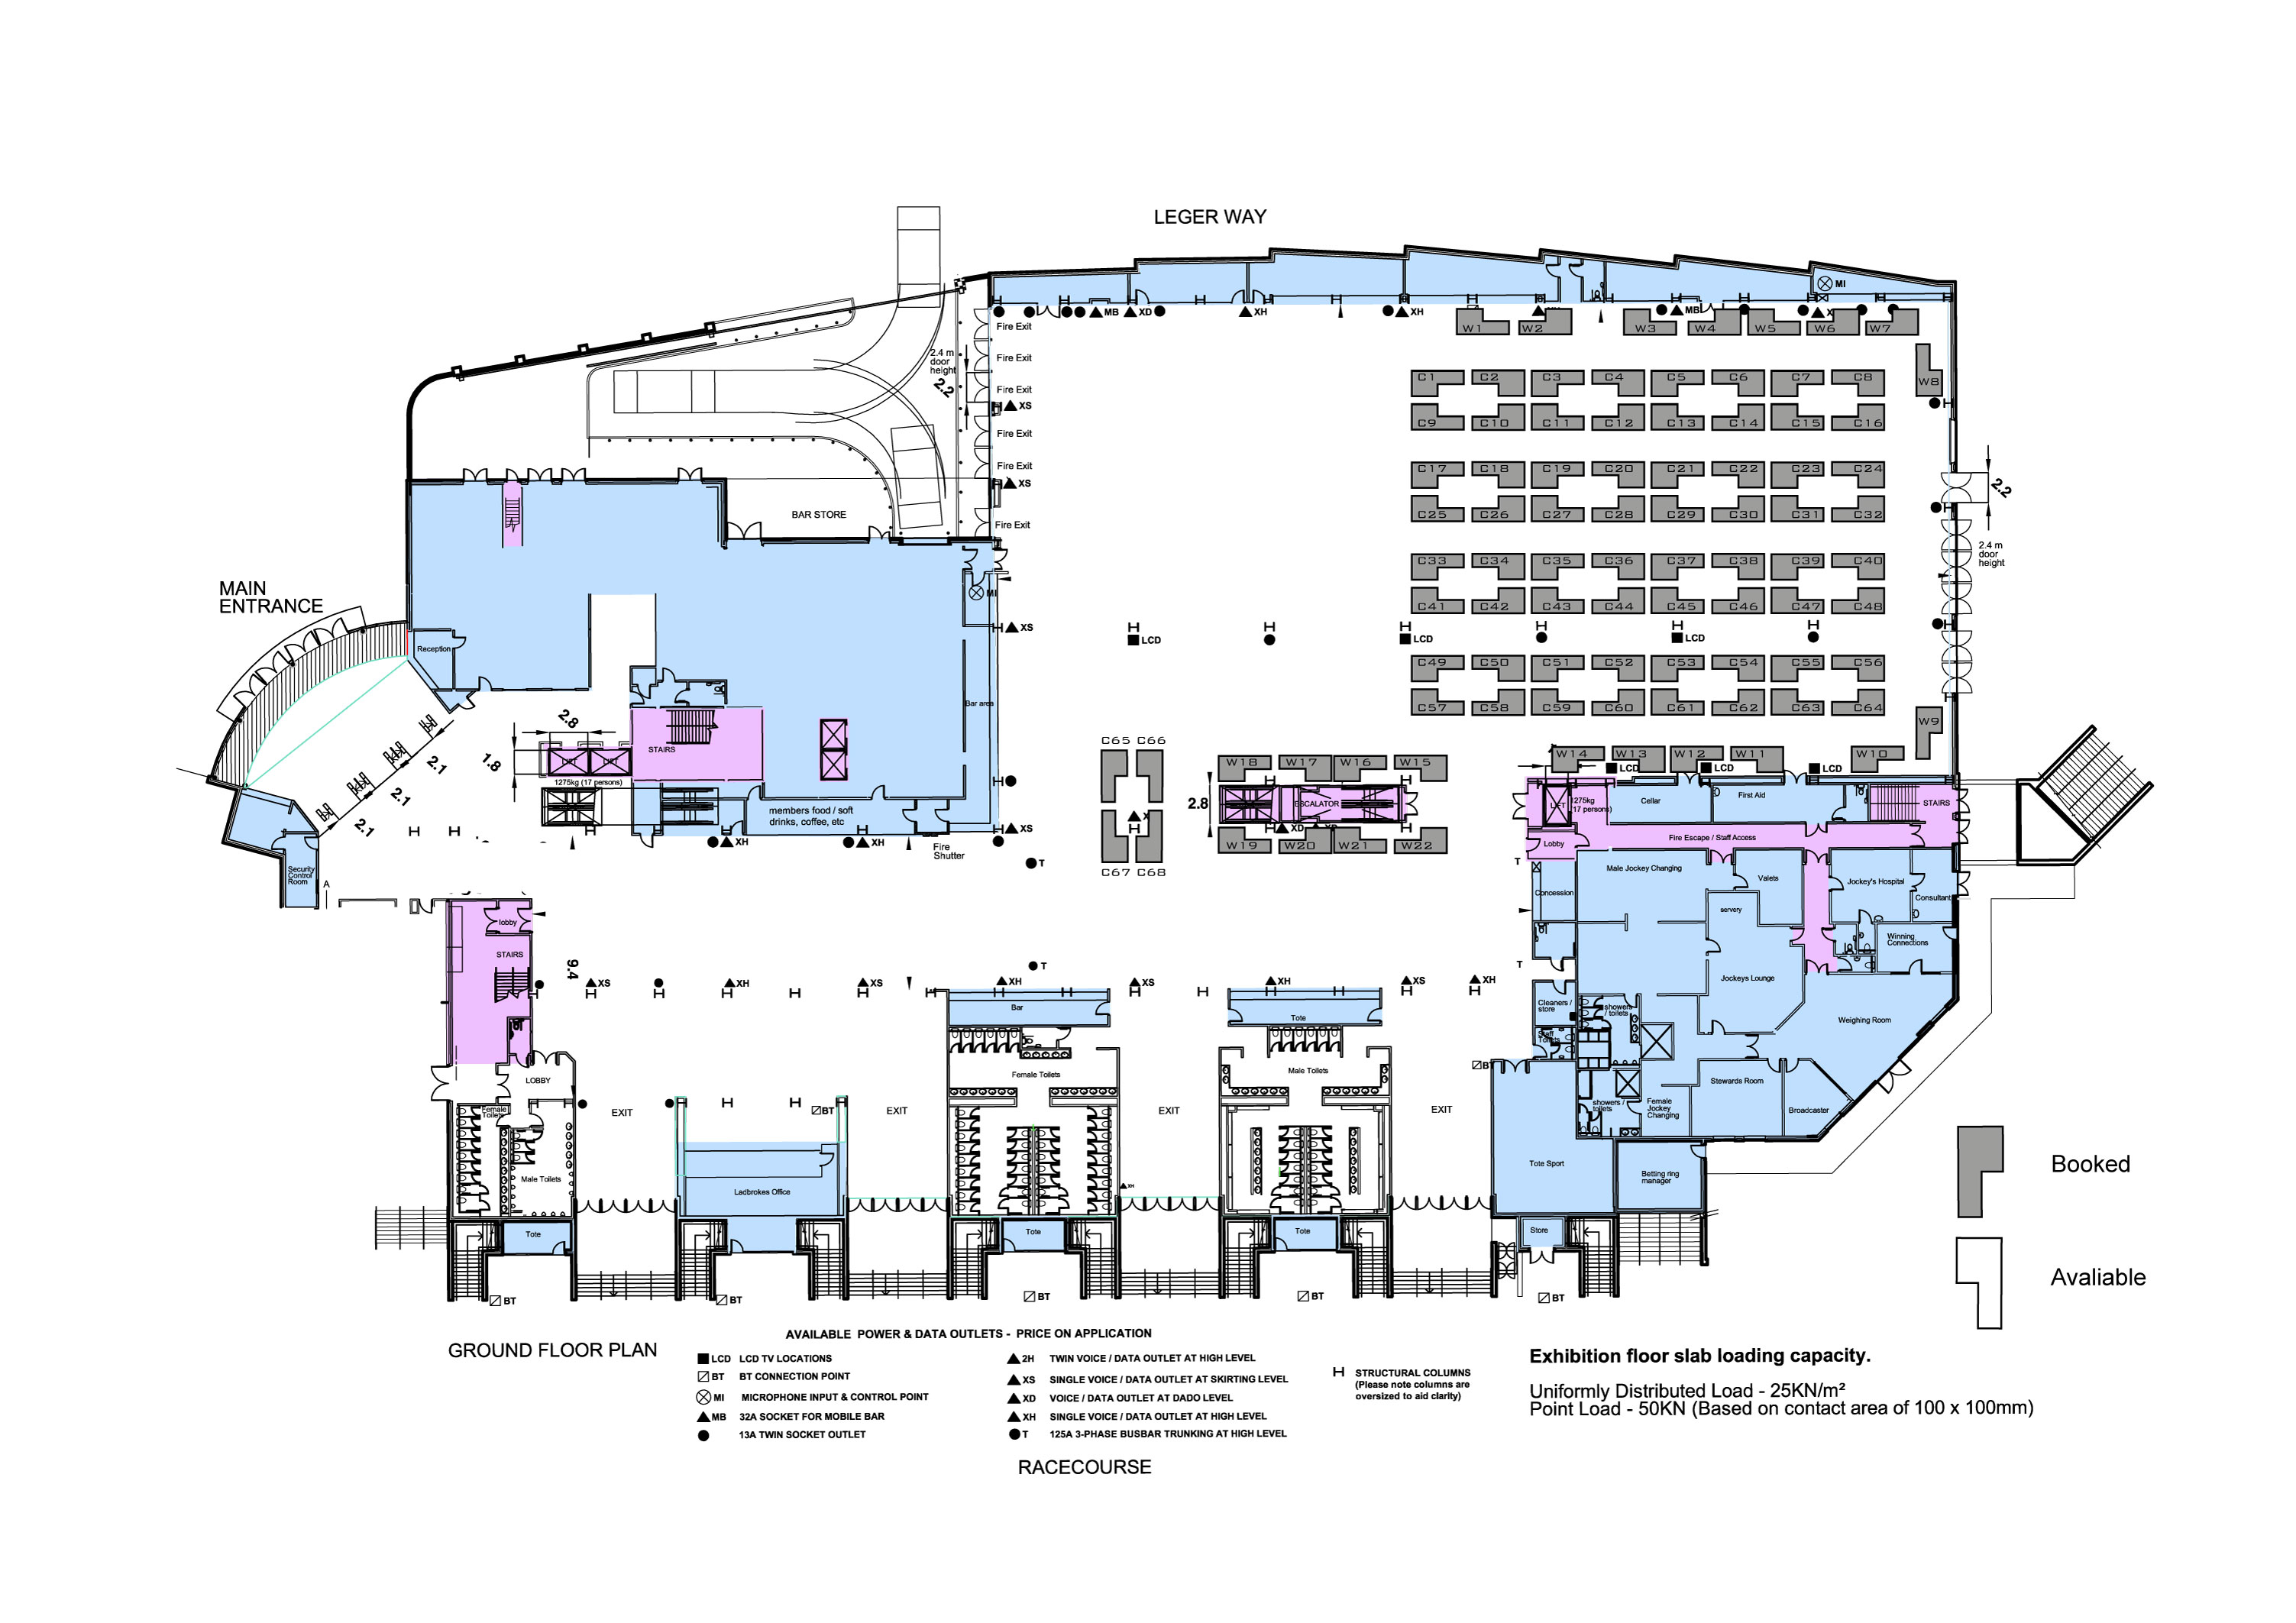 Doncaster racecourse traders floor plan